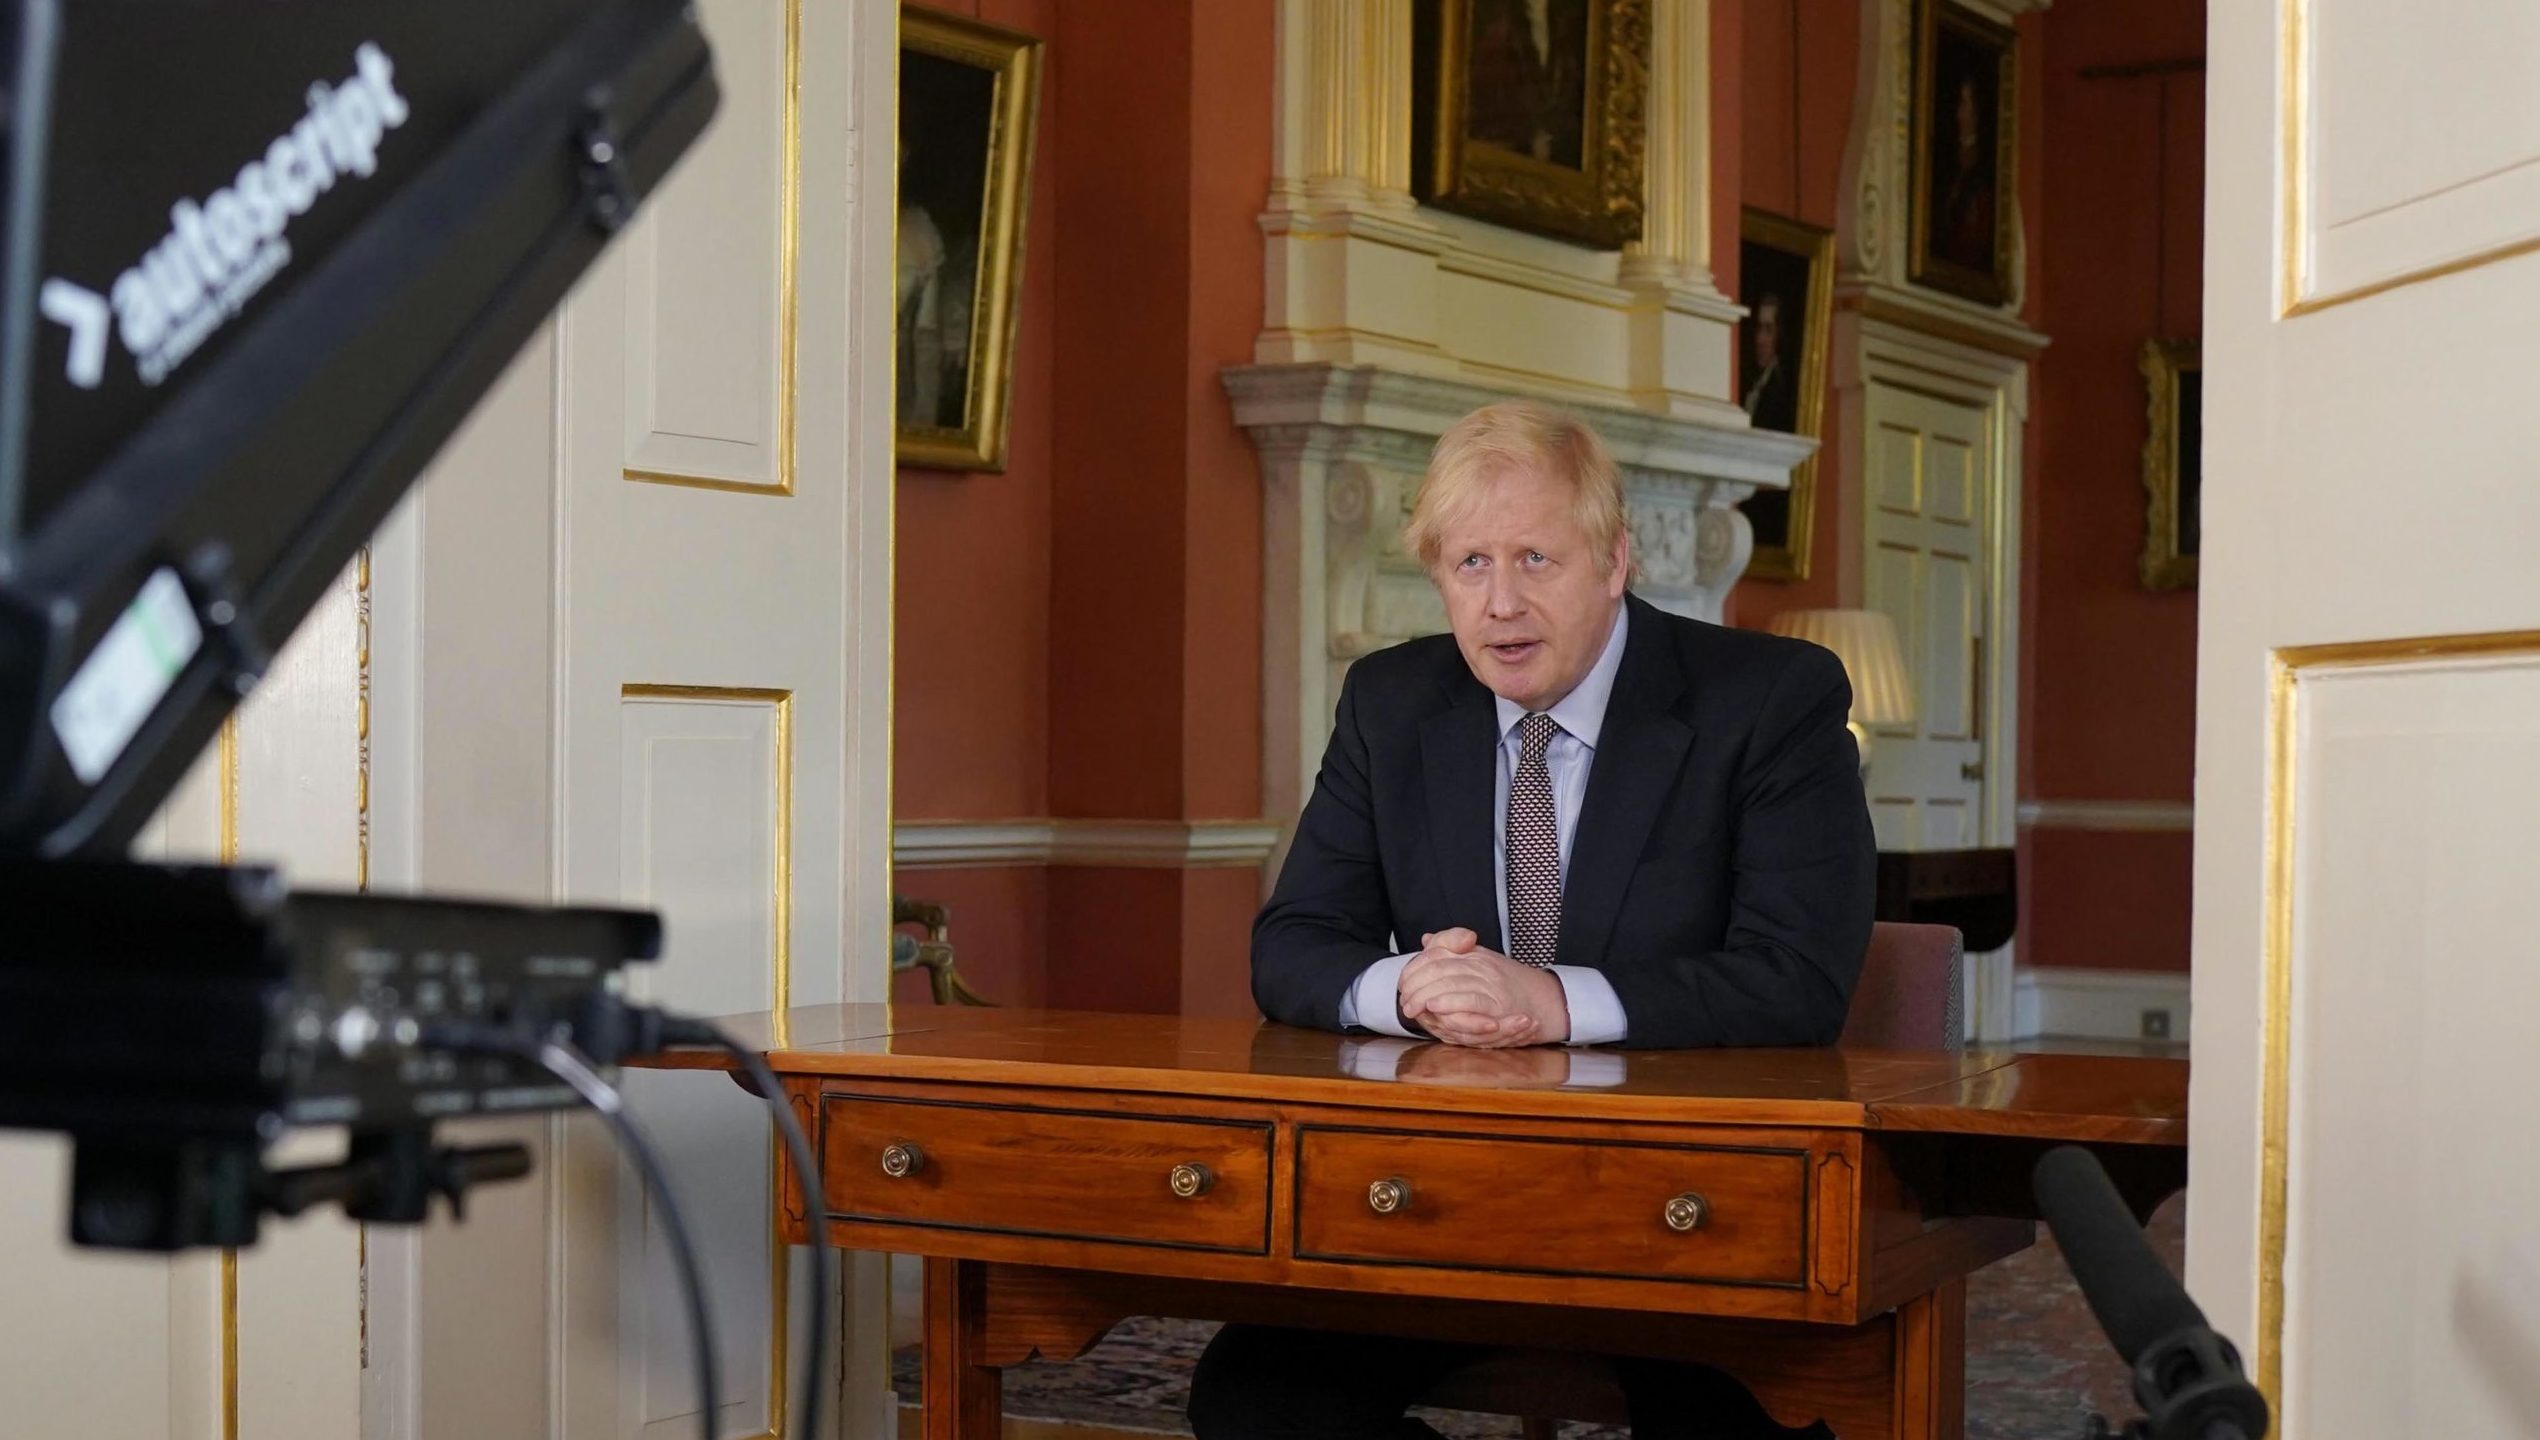 Boris Johnson filming his address to the nation from 10 Downing Street.